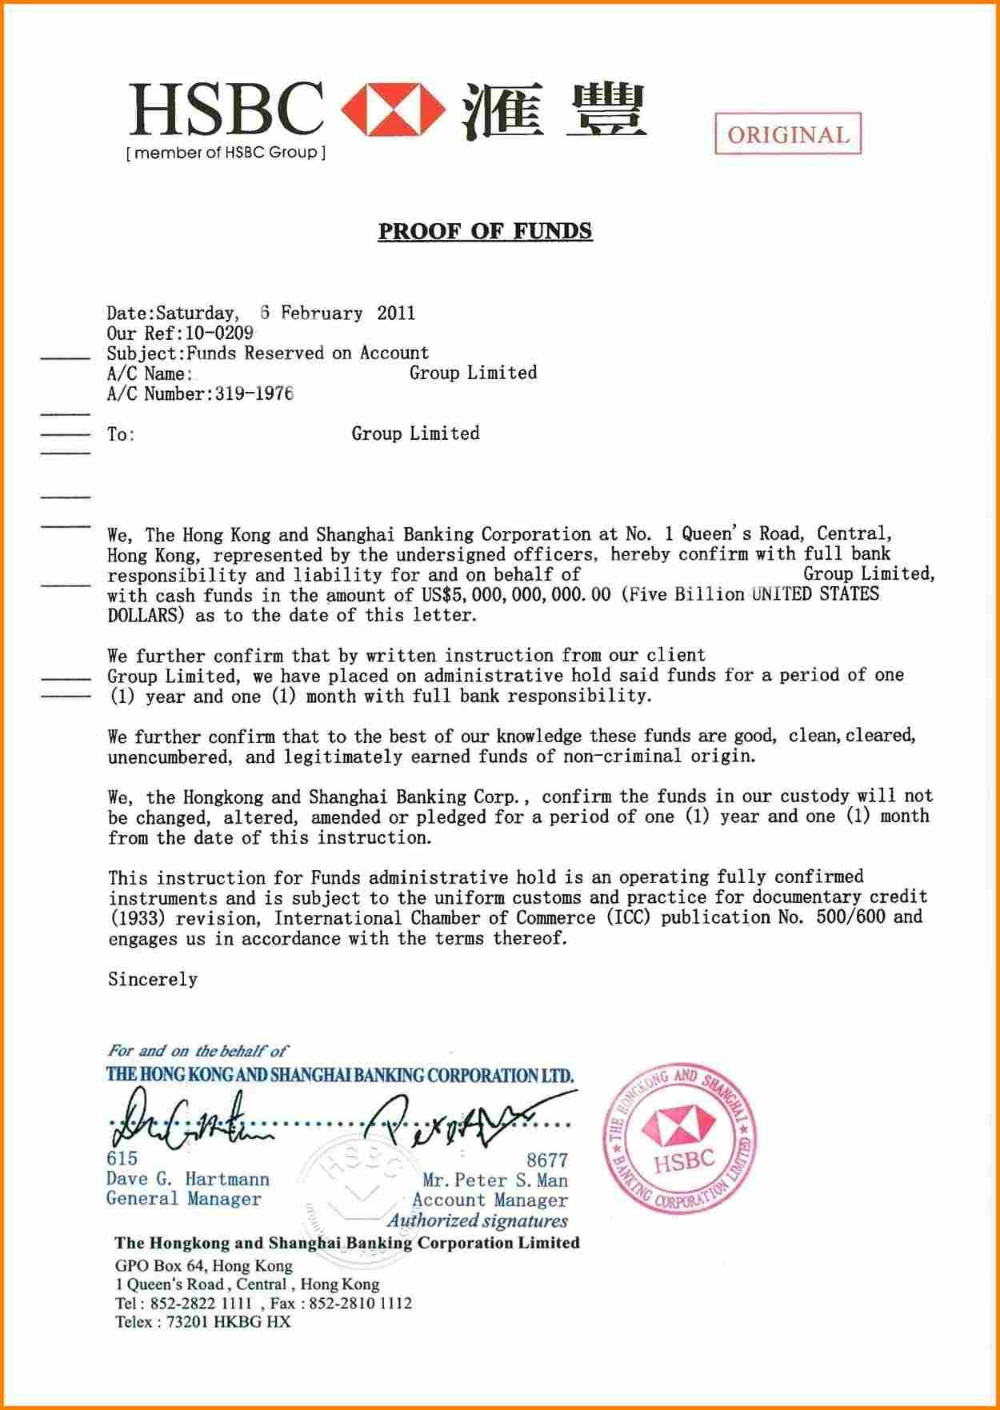 Proof Of Funds Letter Fax Coversheet For Proof Of Funds Letter Template 10 Professional Templates Ideas Letter Templates Business Letter Template Lettering